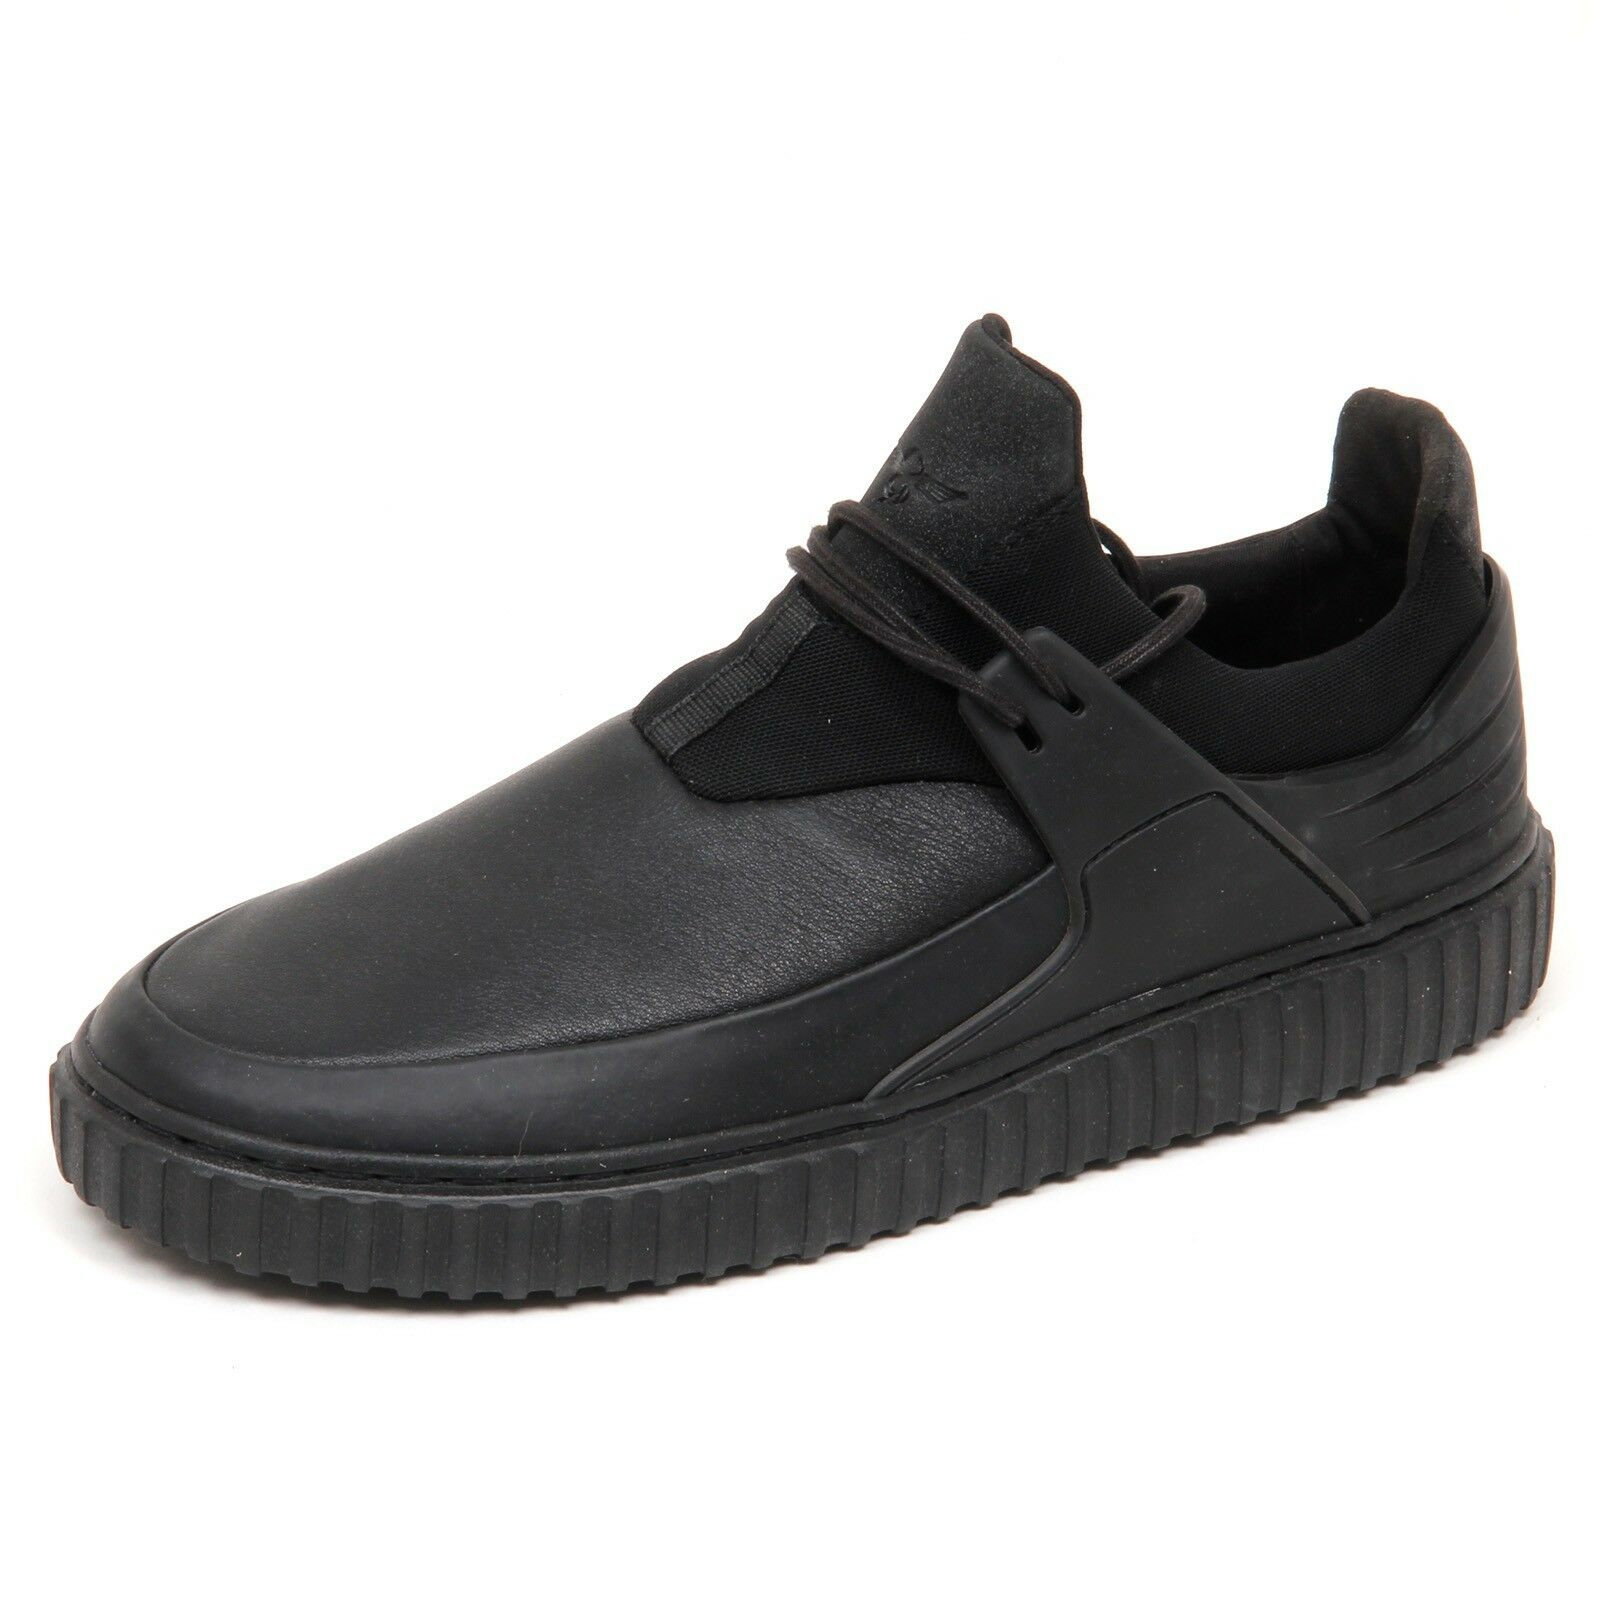 D4930 (without CREATIVE box) sneaker uomo black CREATIVE (without RECREATION shoe man 13b700